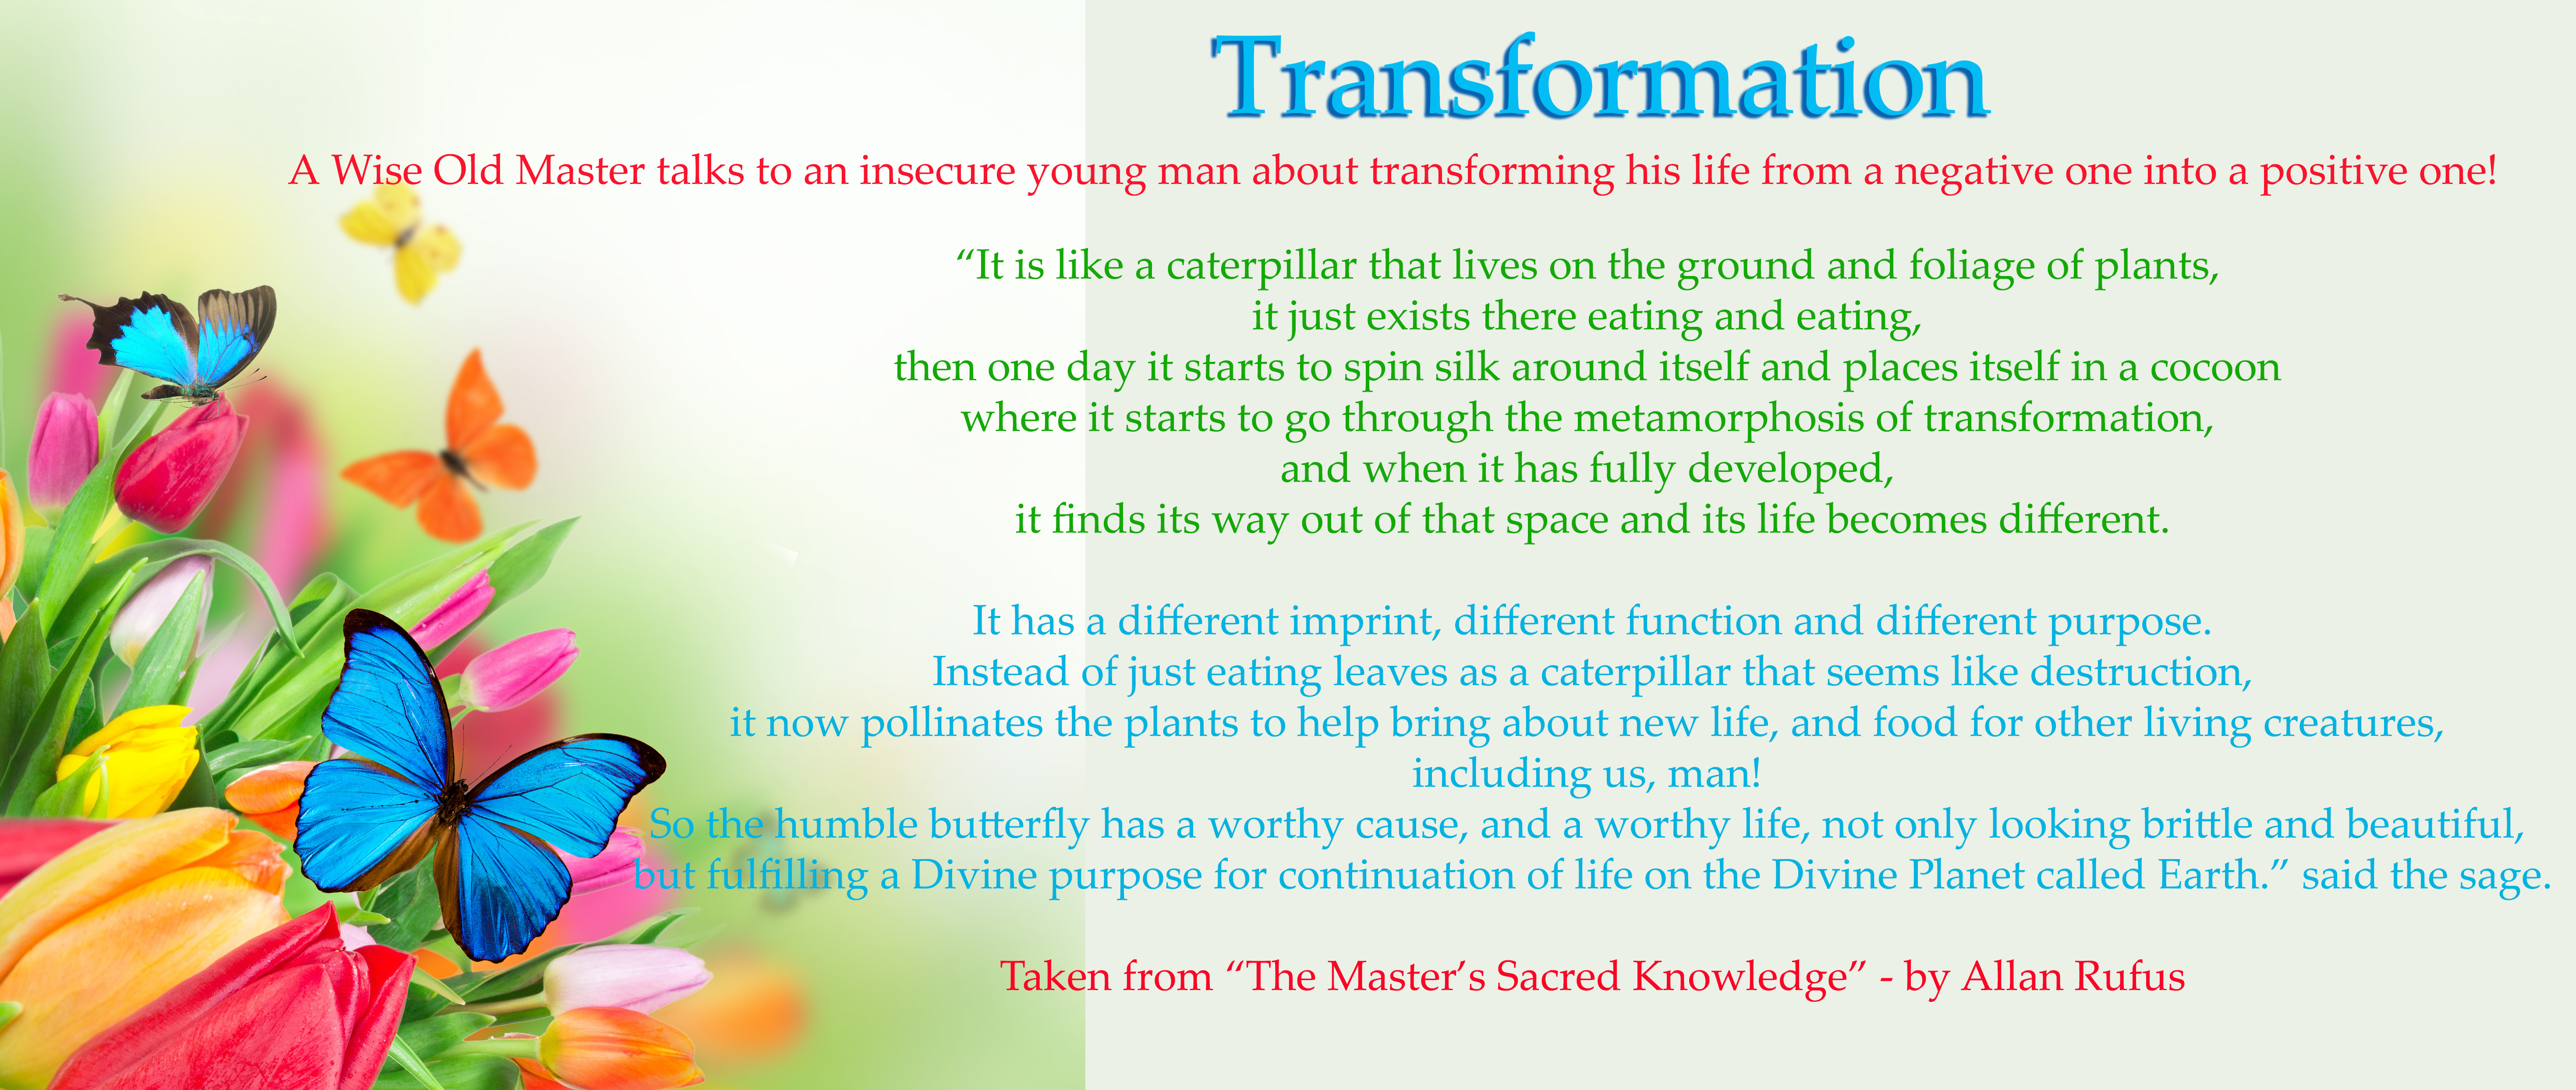 metamorphosis transformation Metamorphosis definition: when a metamorphosis occurs, a person or thing develops and changes into something | meaning, pronunciation, translations and examples  specif, the physical transformation, more or less sudden, undergone by various animals during development after the embryonic state, as of the larva of an insect to the pupa and.